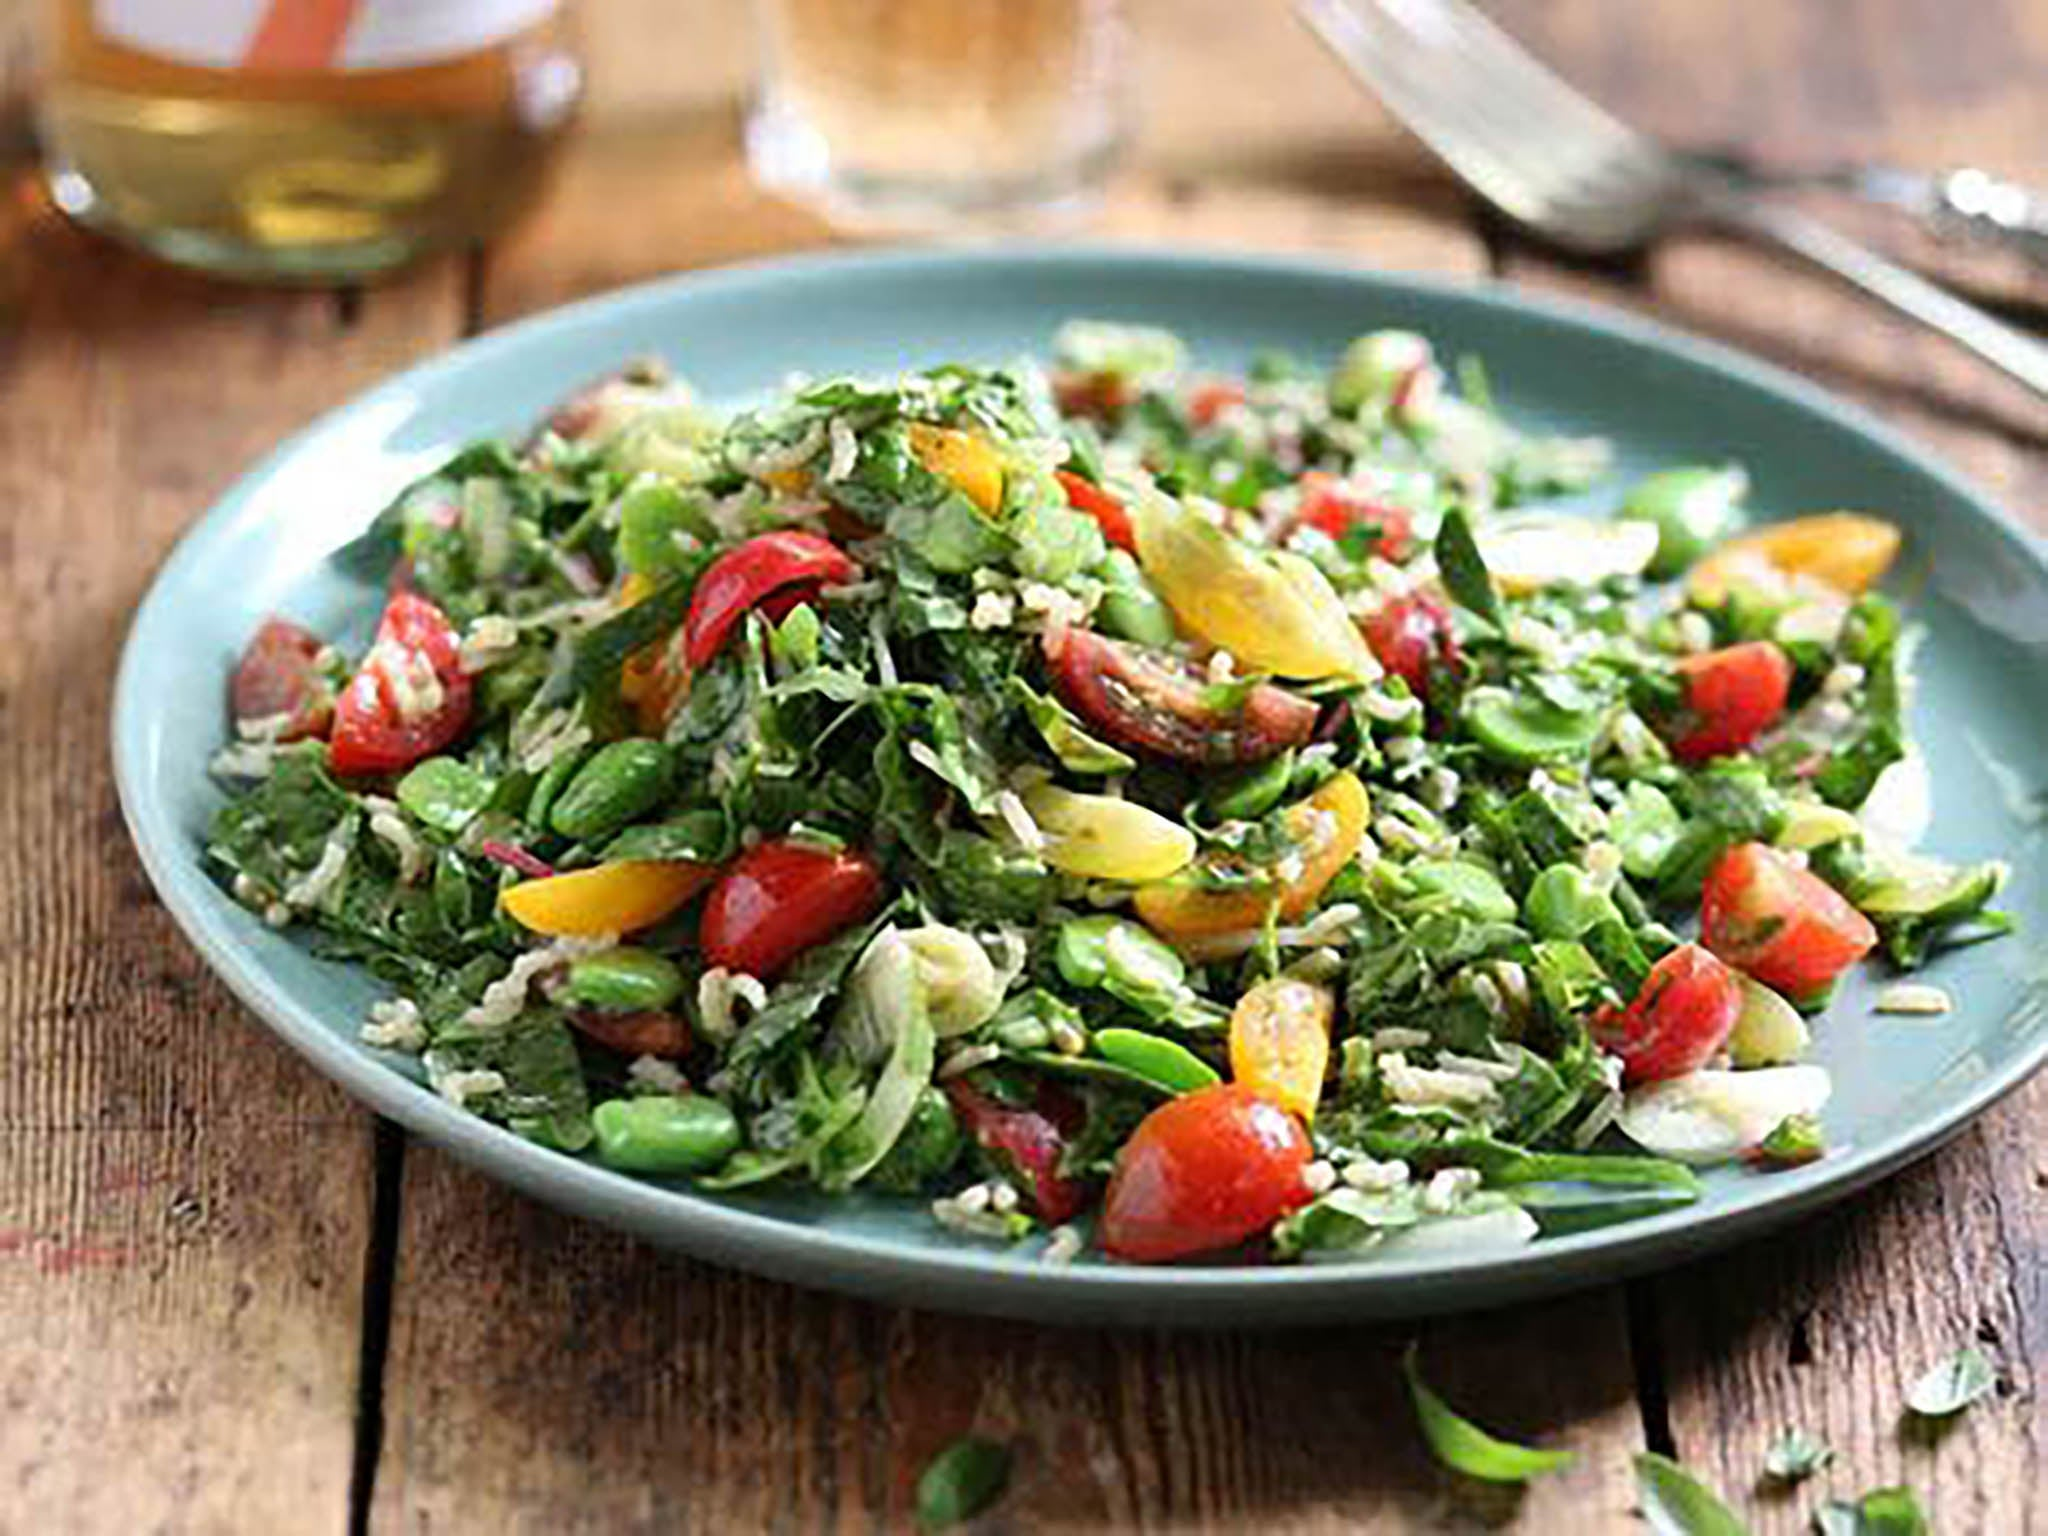 How to make summer rice salad with broad beans, red chard and tomatoes 1